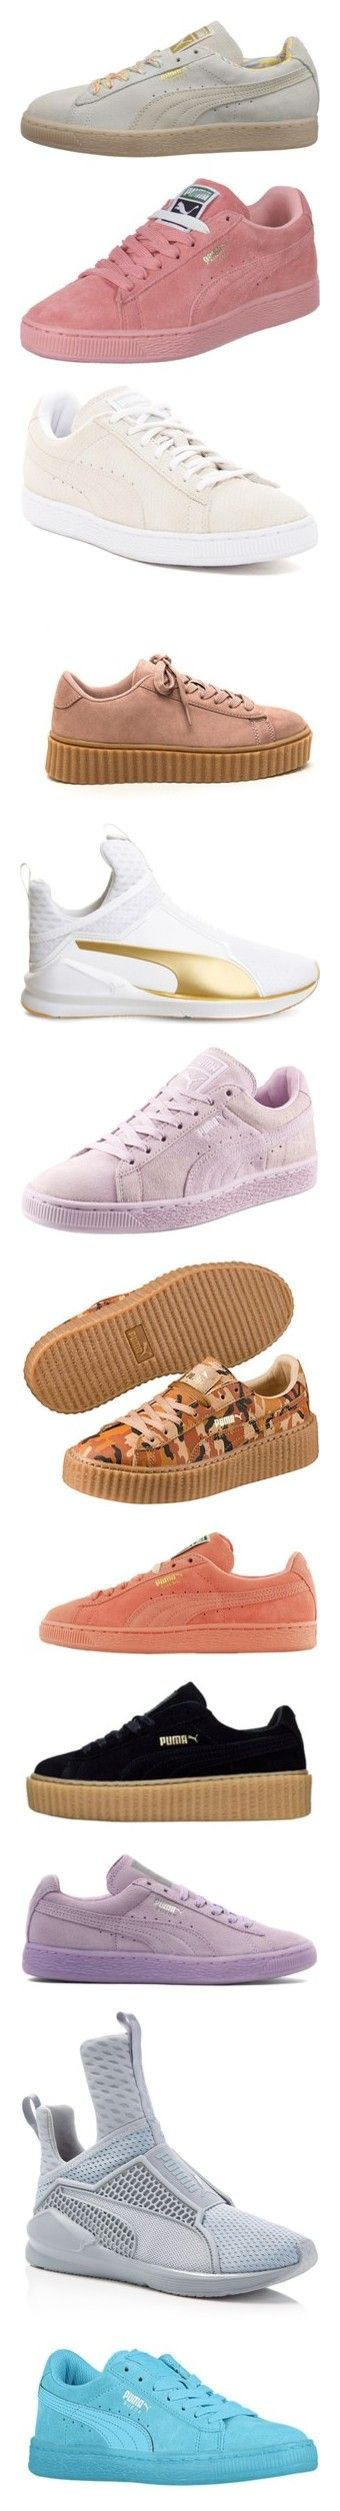 """""""Puma"""" by beautifully-weird ❤ liked on Polyvore featuring shoes, sneakers, cat shoes, cat print shoes, puma footwear, suede leather shoes, woven shoes, pink shoes, slip resistant shoes and anti slip shoes"""